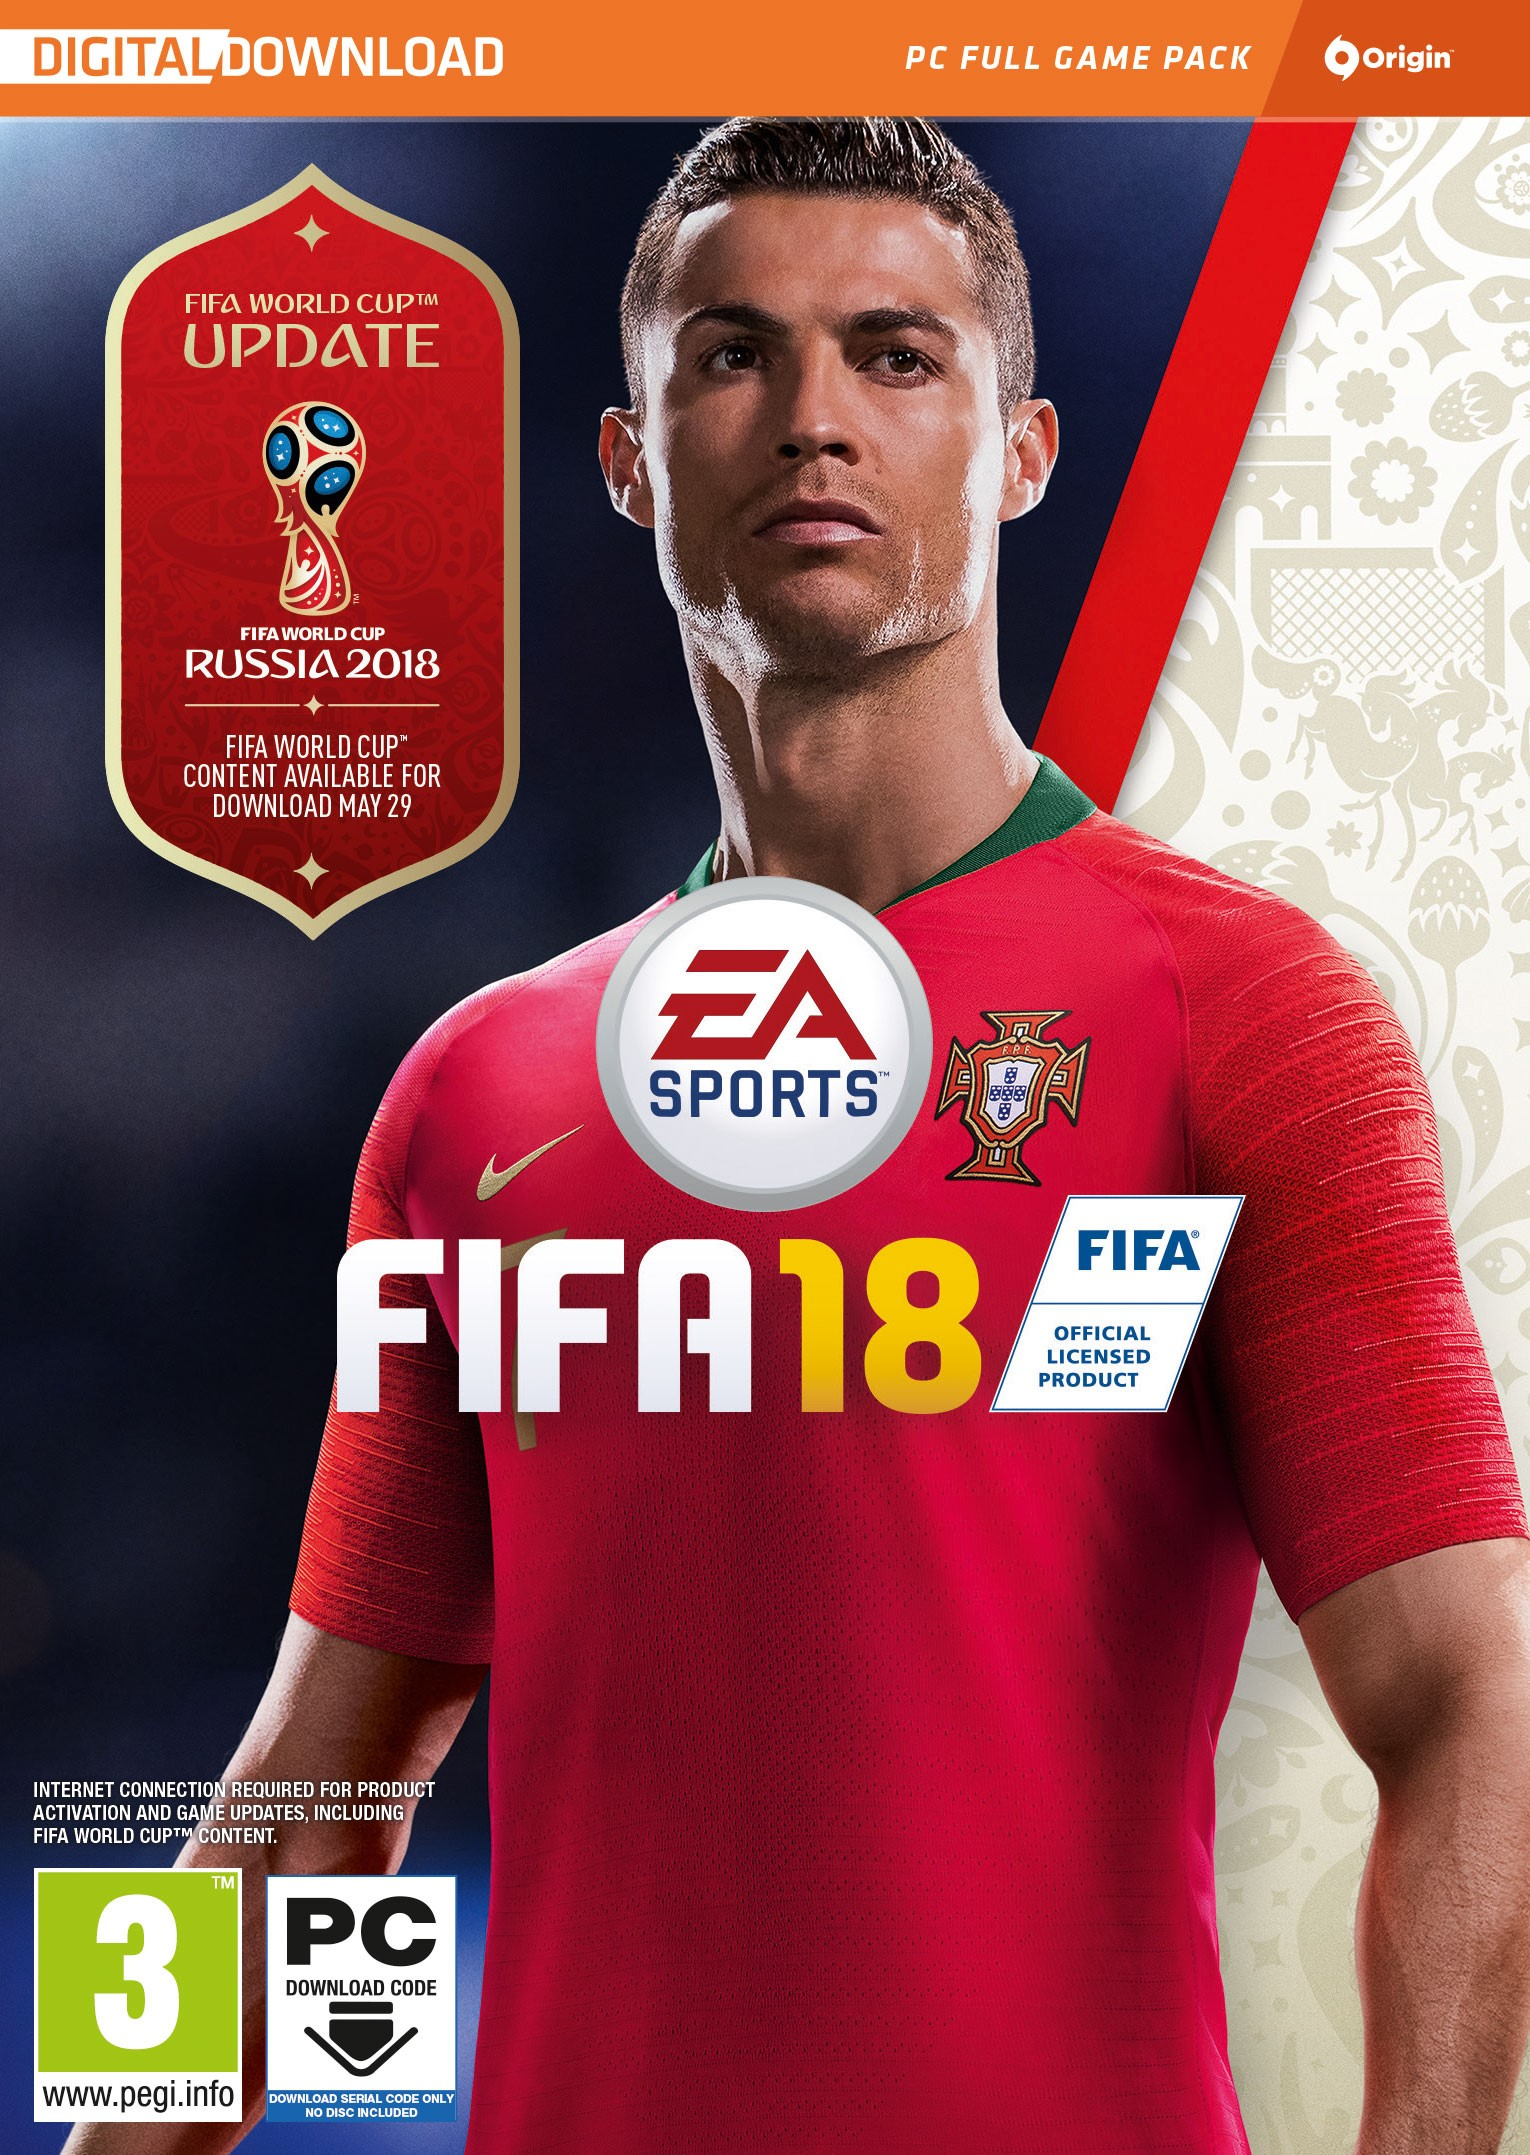 FIFA 18 (Origin Key) - Region Free/RU